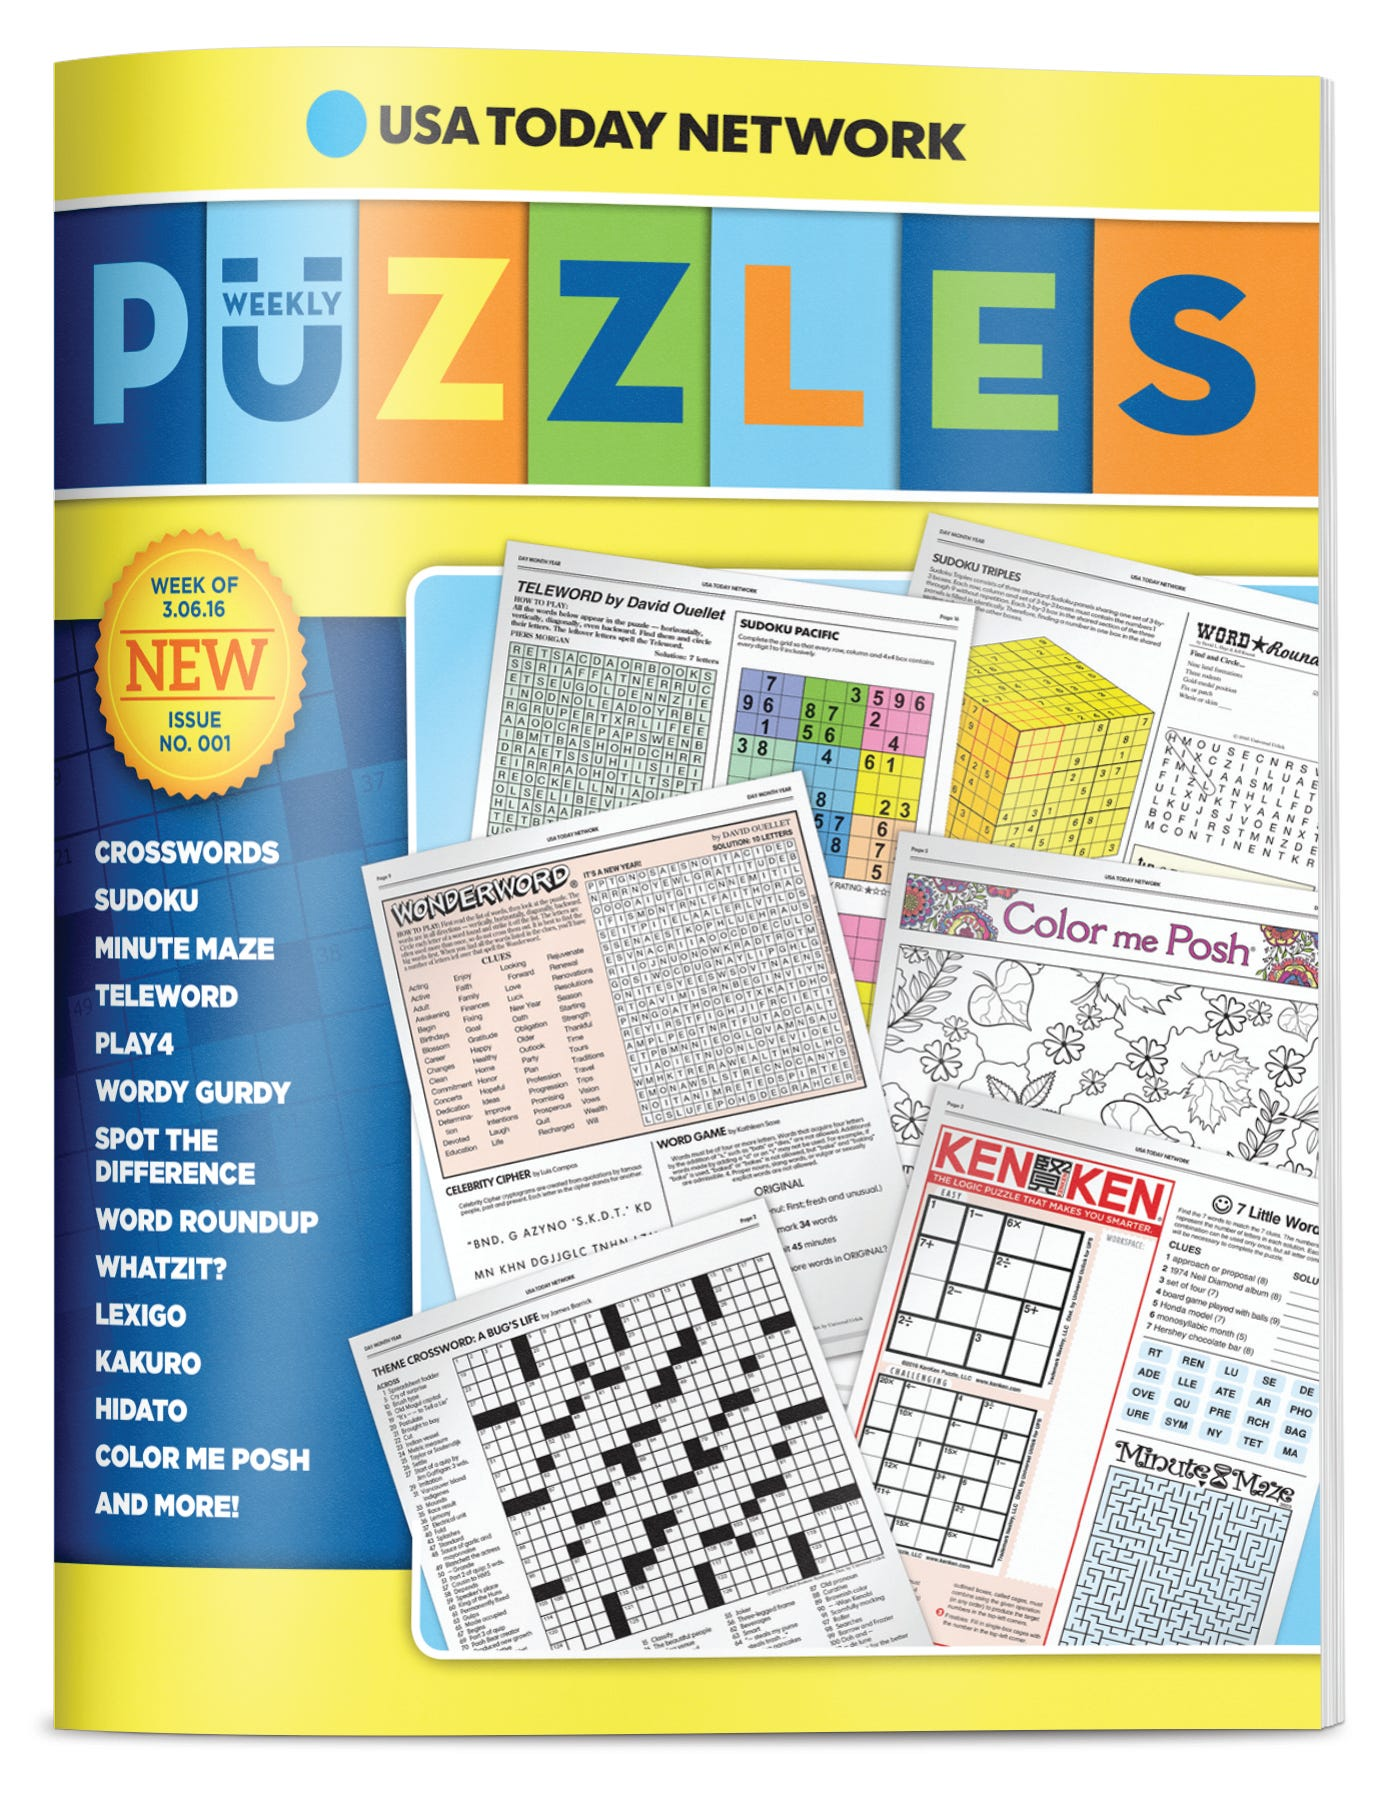 graphic about Usa Today Crossword Puzzle Printable referred to as Purchase Weekly Puzzles supplied in the direction of your property